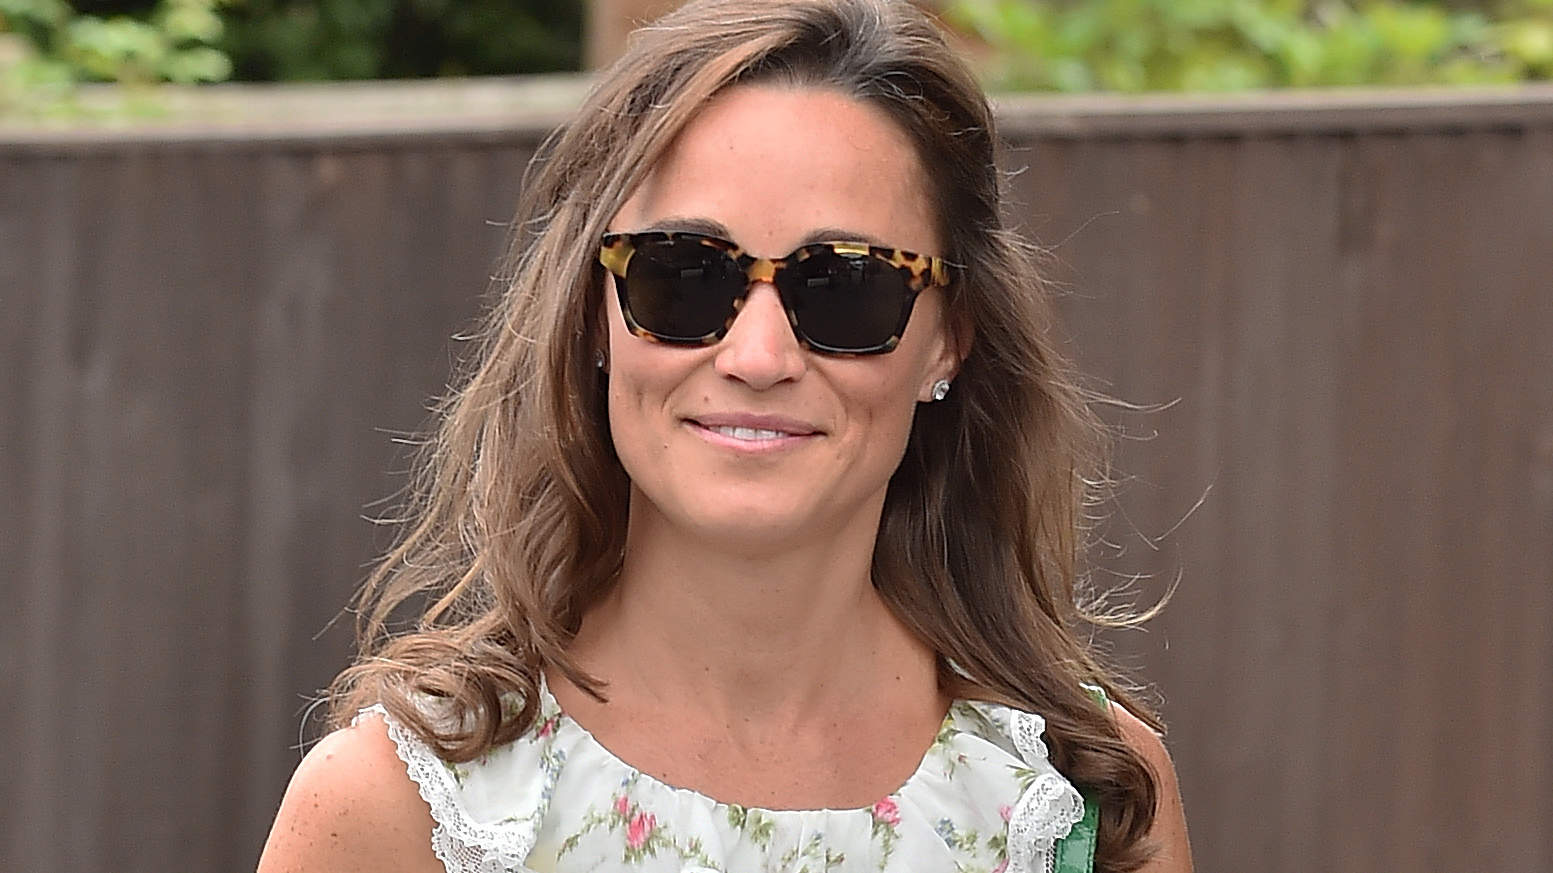 Pippa Middleton Shows off Postpartum Body in Bikini 10 Weeks After Welcoming First Baby